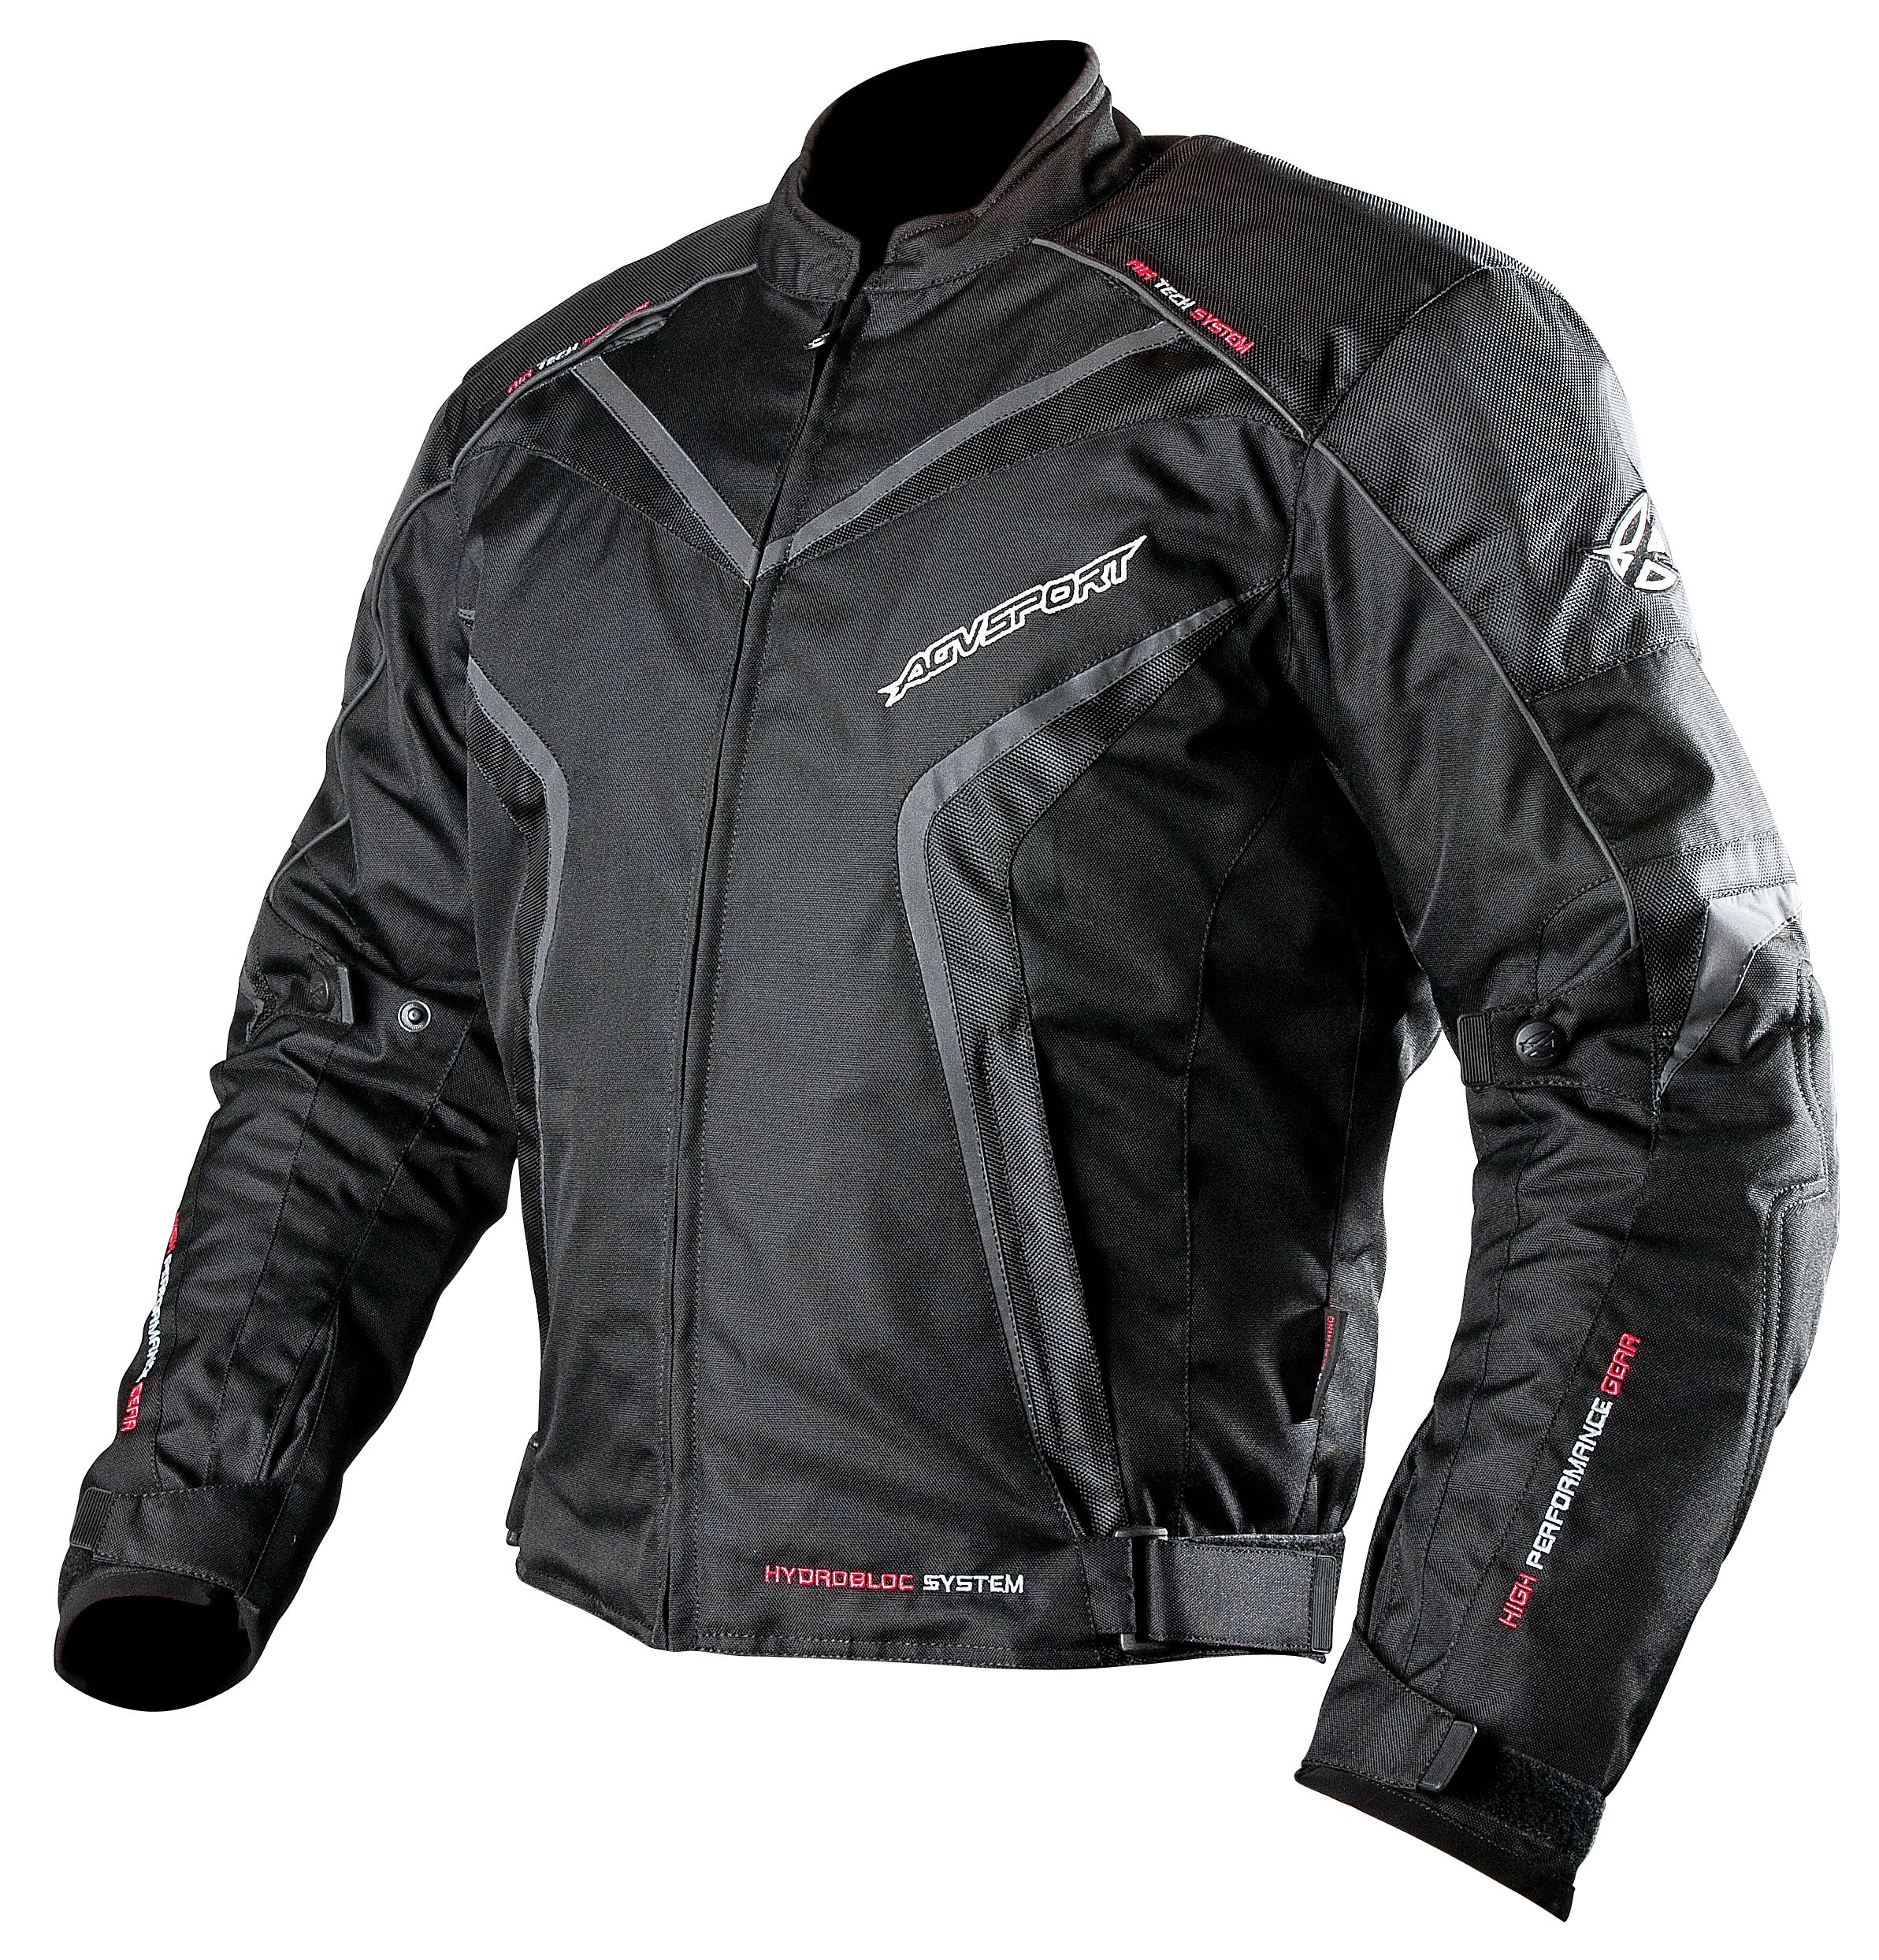 Sniper Motorcycle jacket, Jackets, Motorcycle outfit